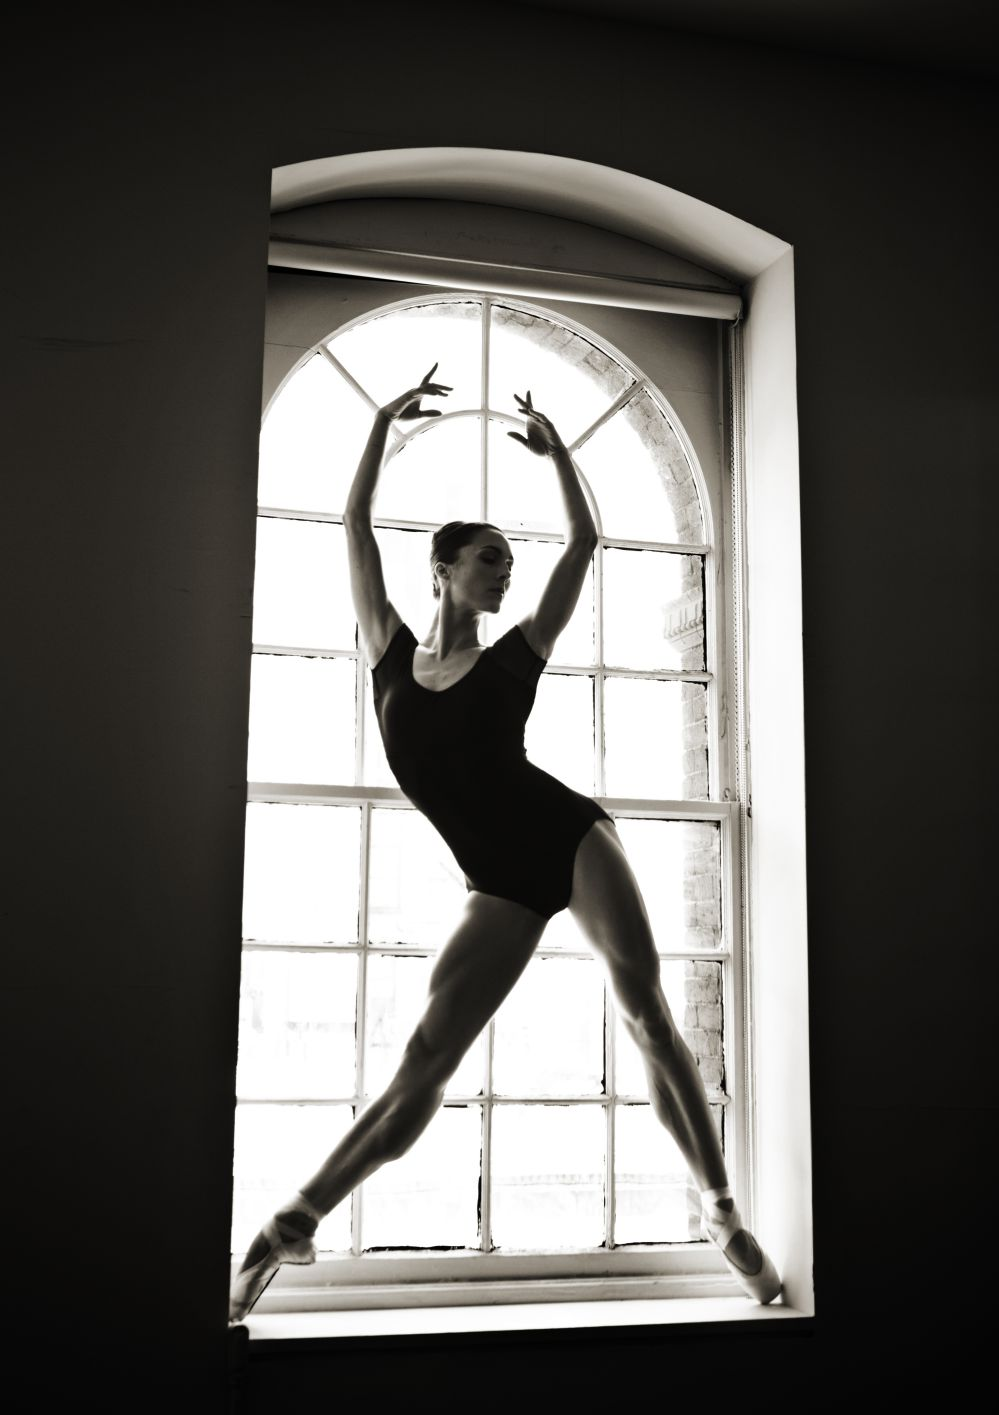 saraforrest_photography_jacobypronk_dance_nyc_02_compressed